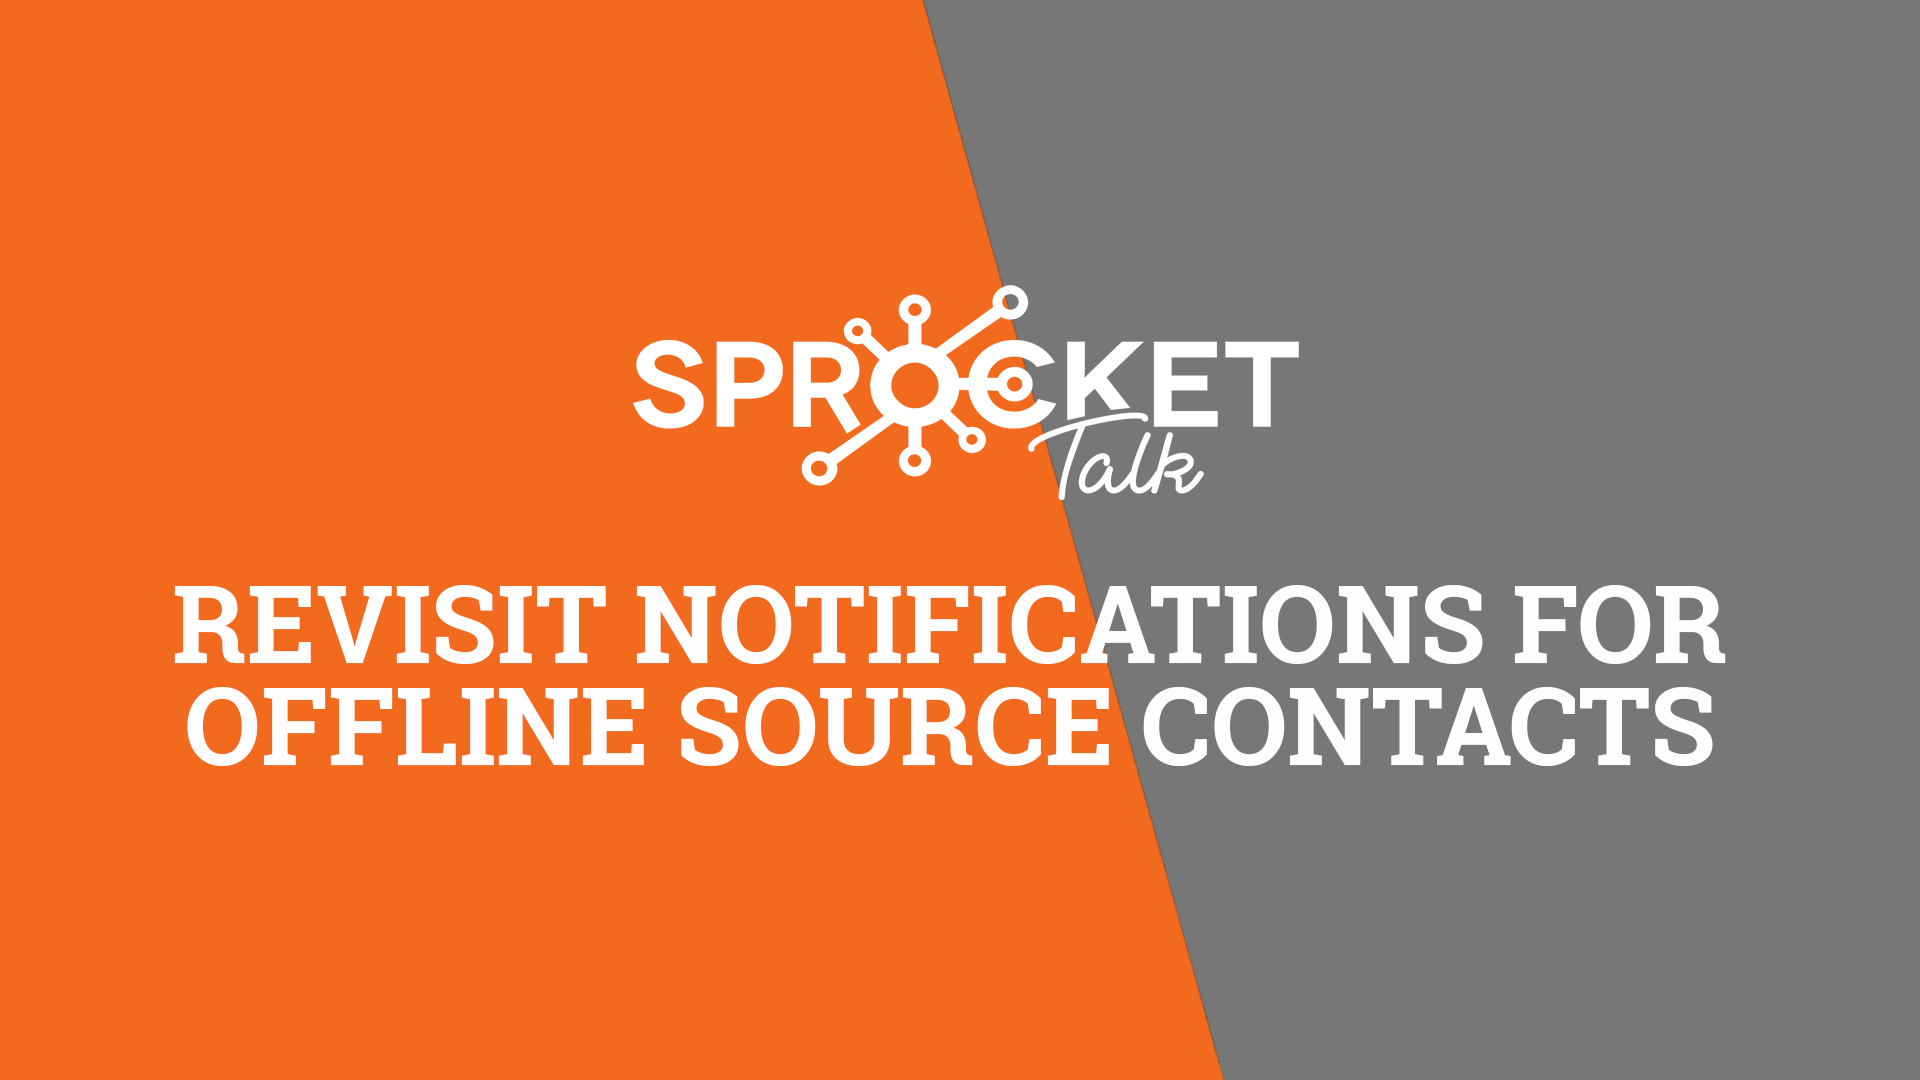 Revisit Notifications for Contacts from Offline Sources